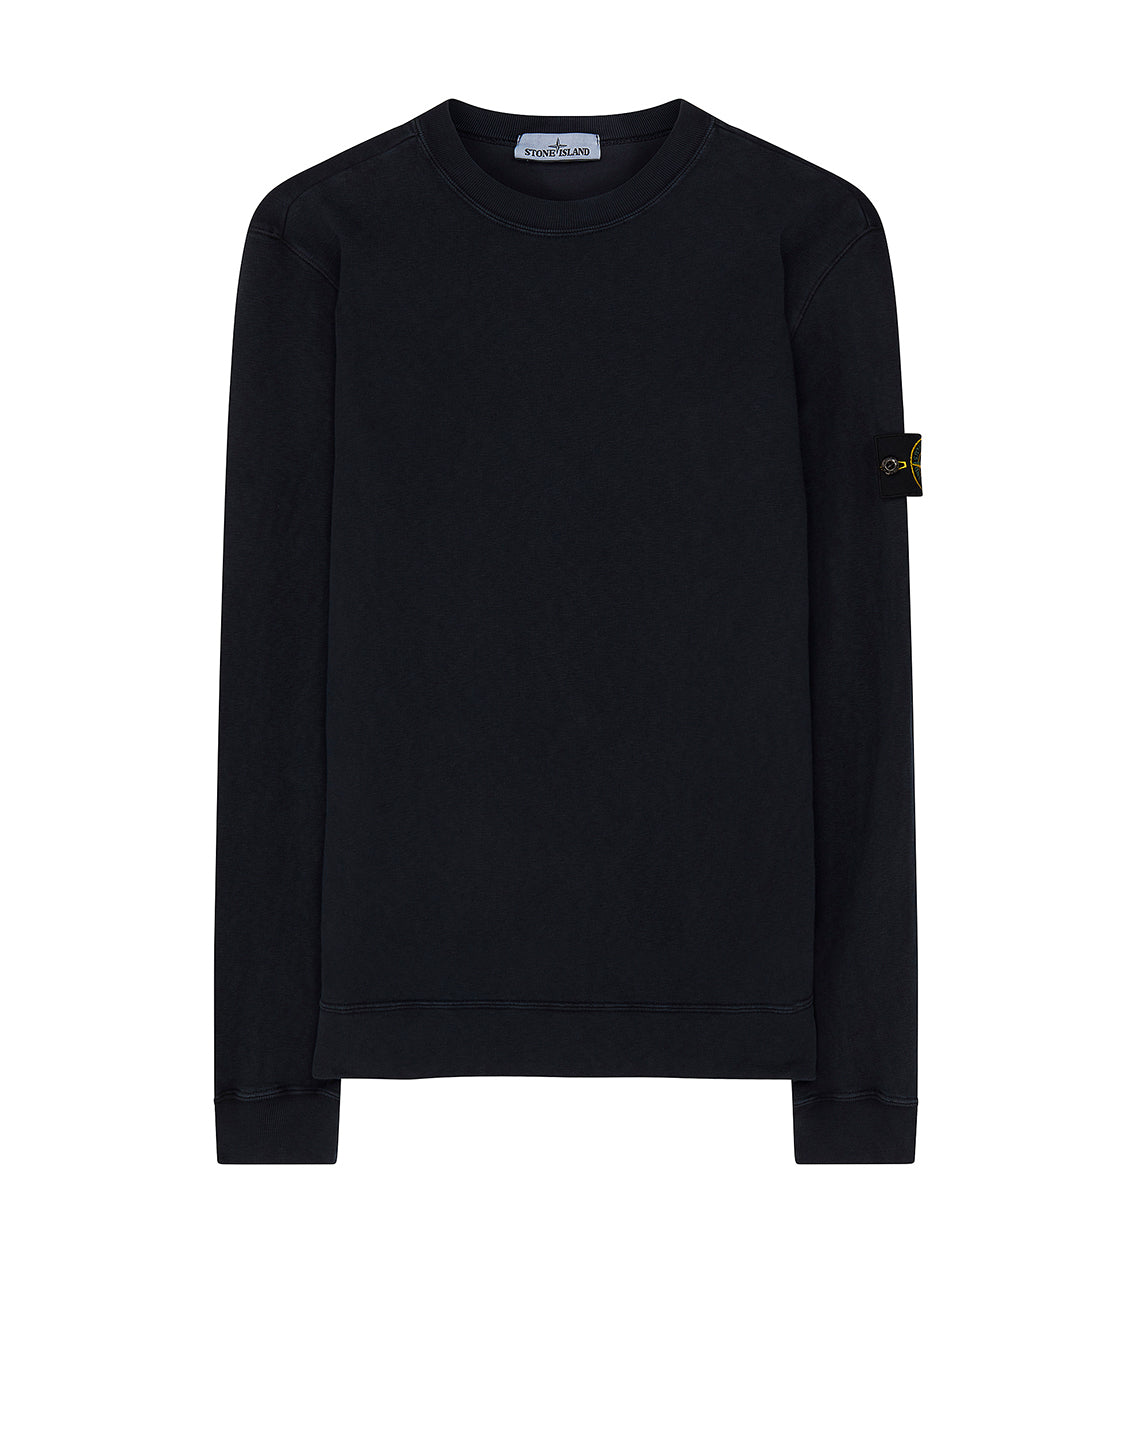 65560 'OLD' DYE TREATMENT Sweatshirt in Navy Blue